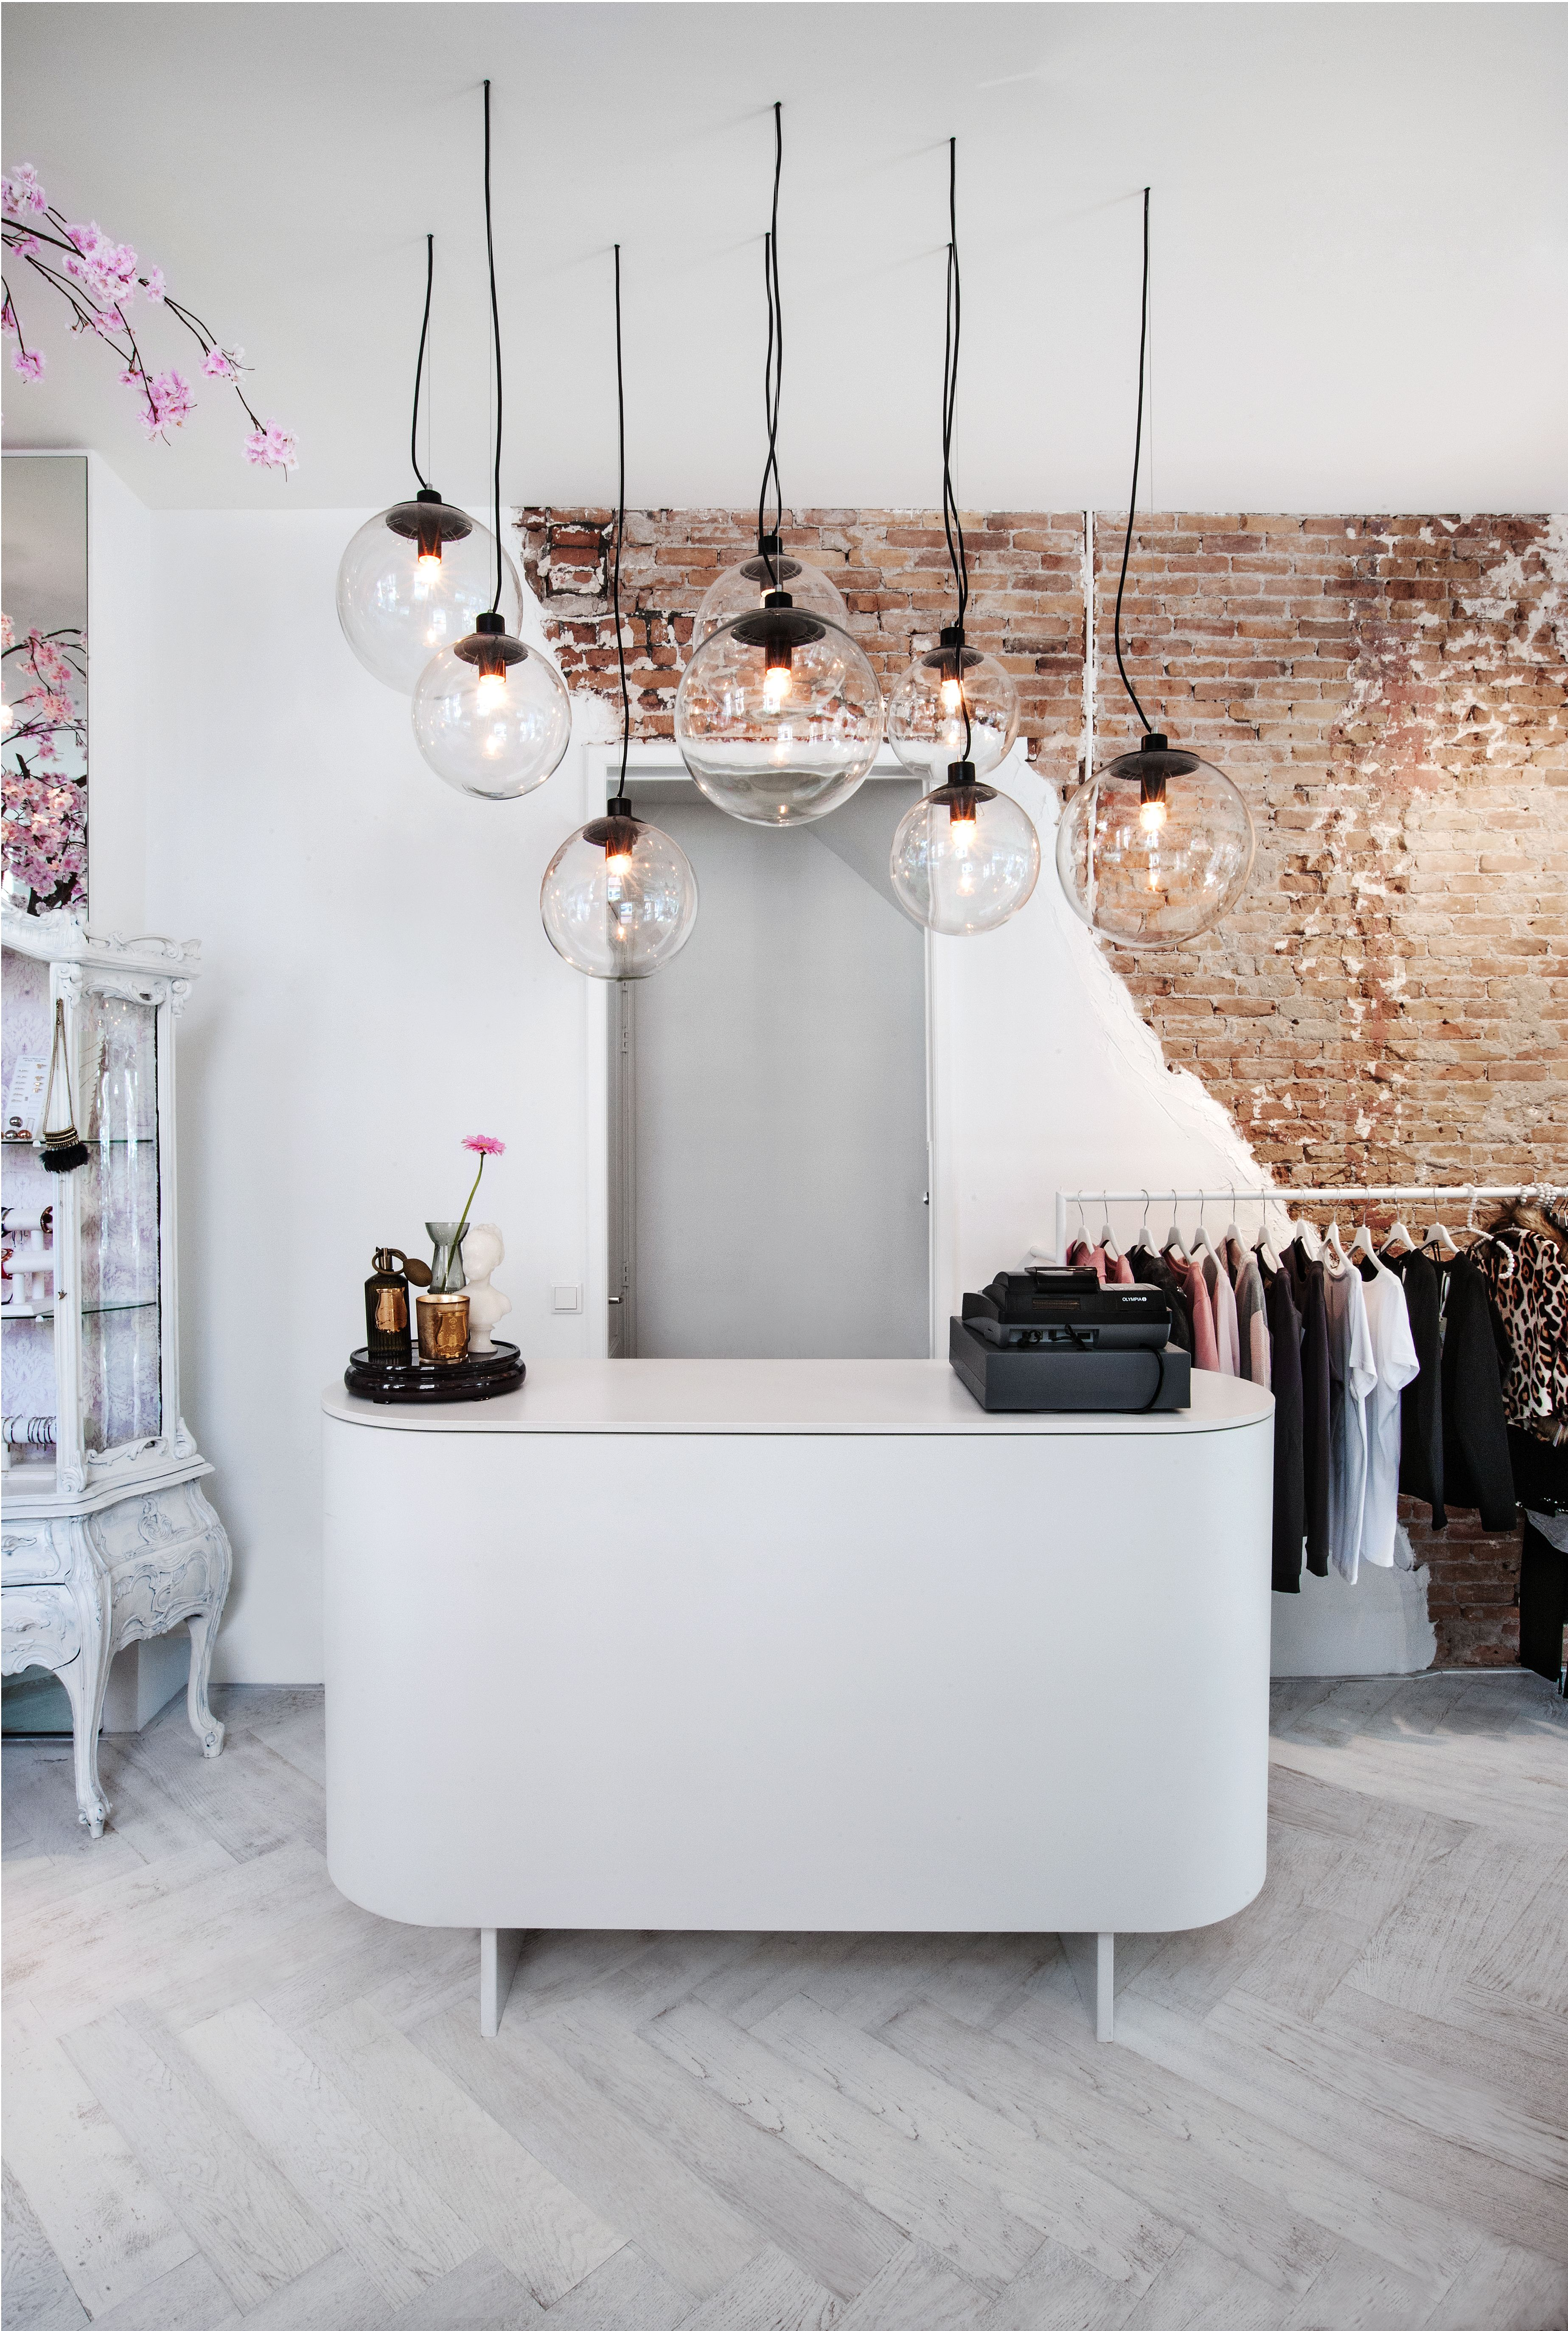 fashion boutique - design by judithvanmourik | interior architecture ...